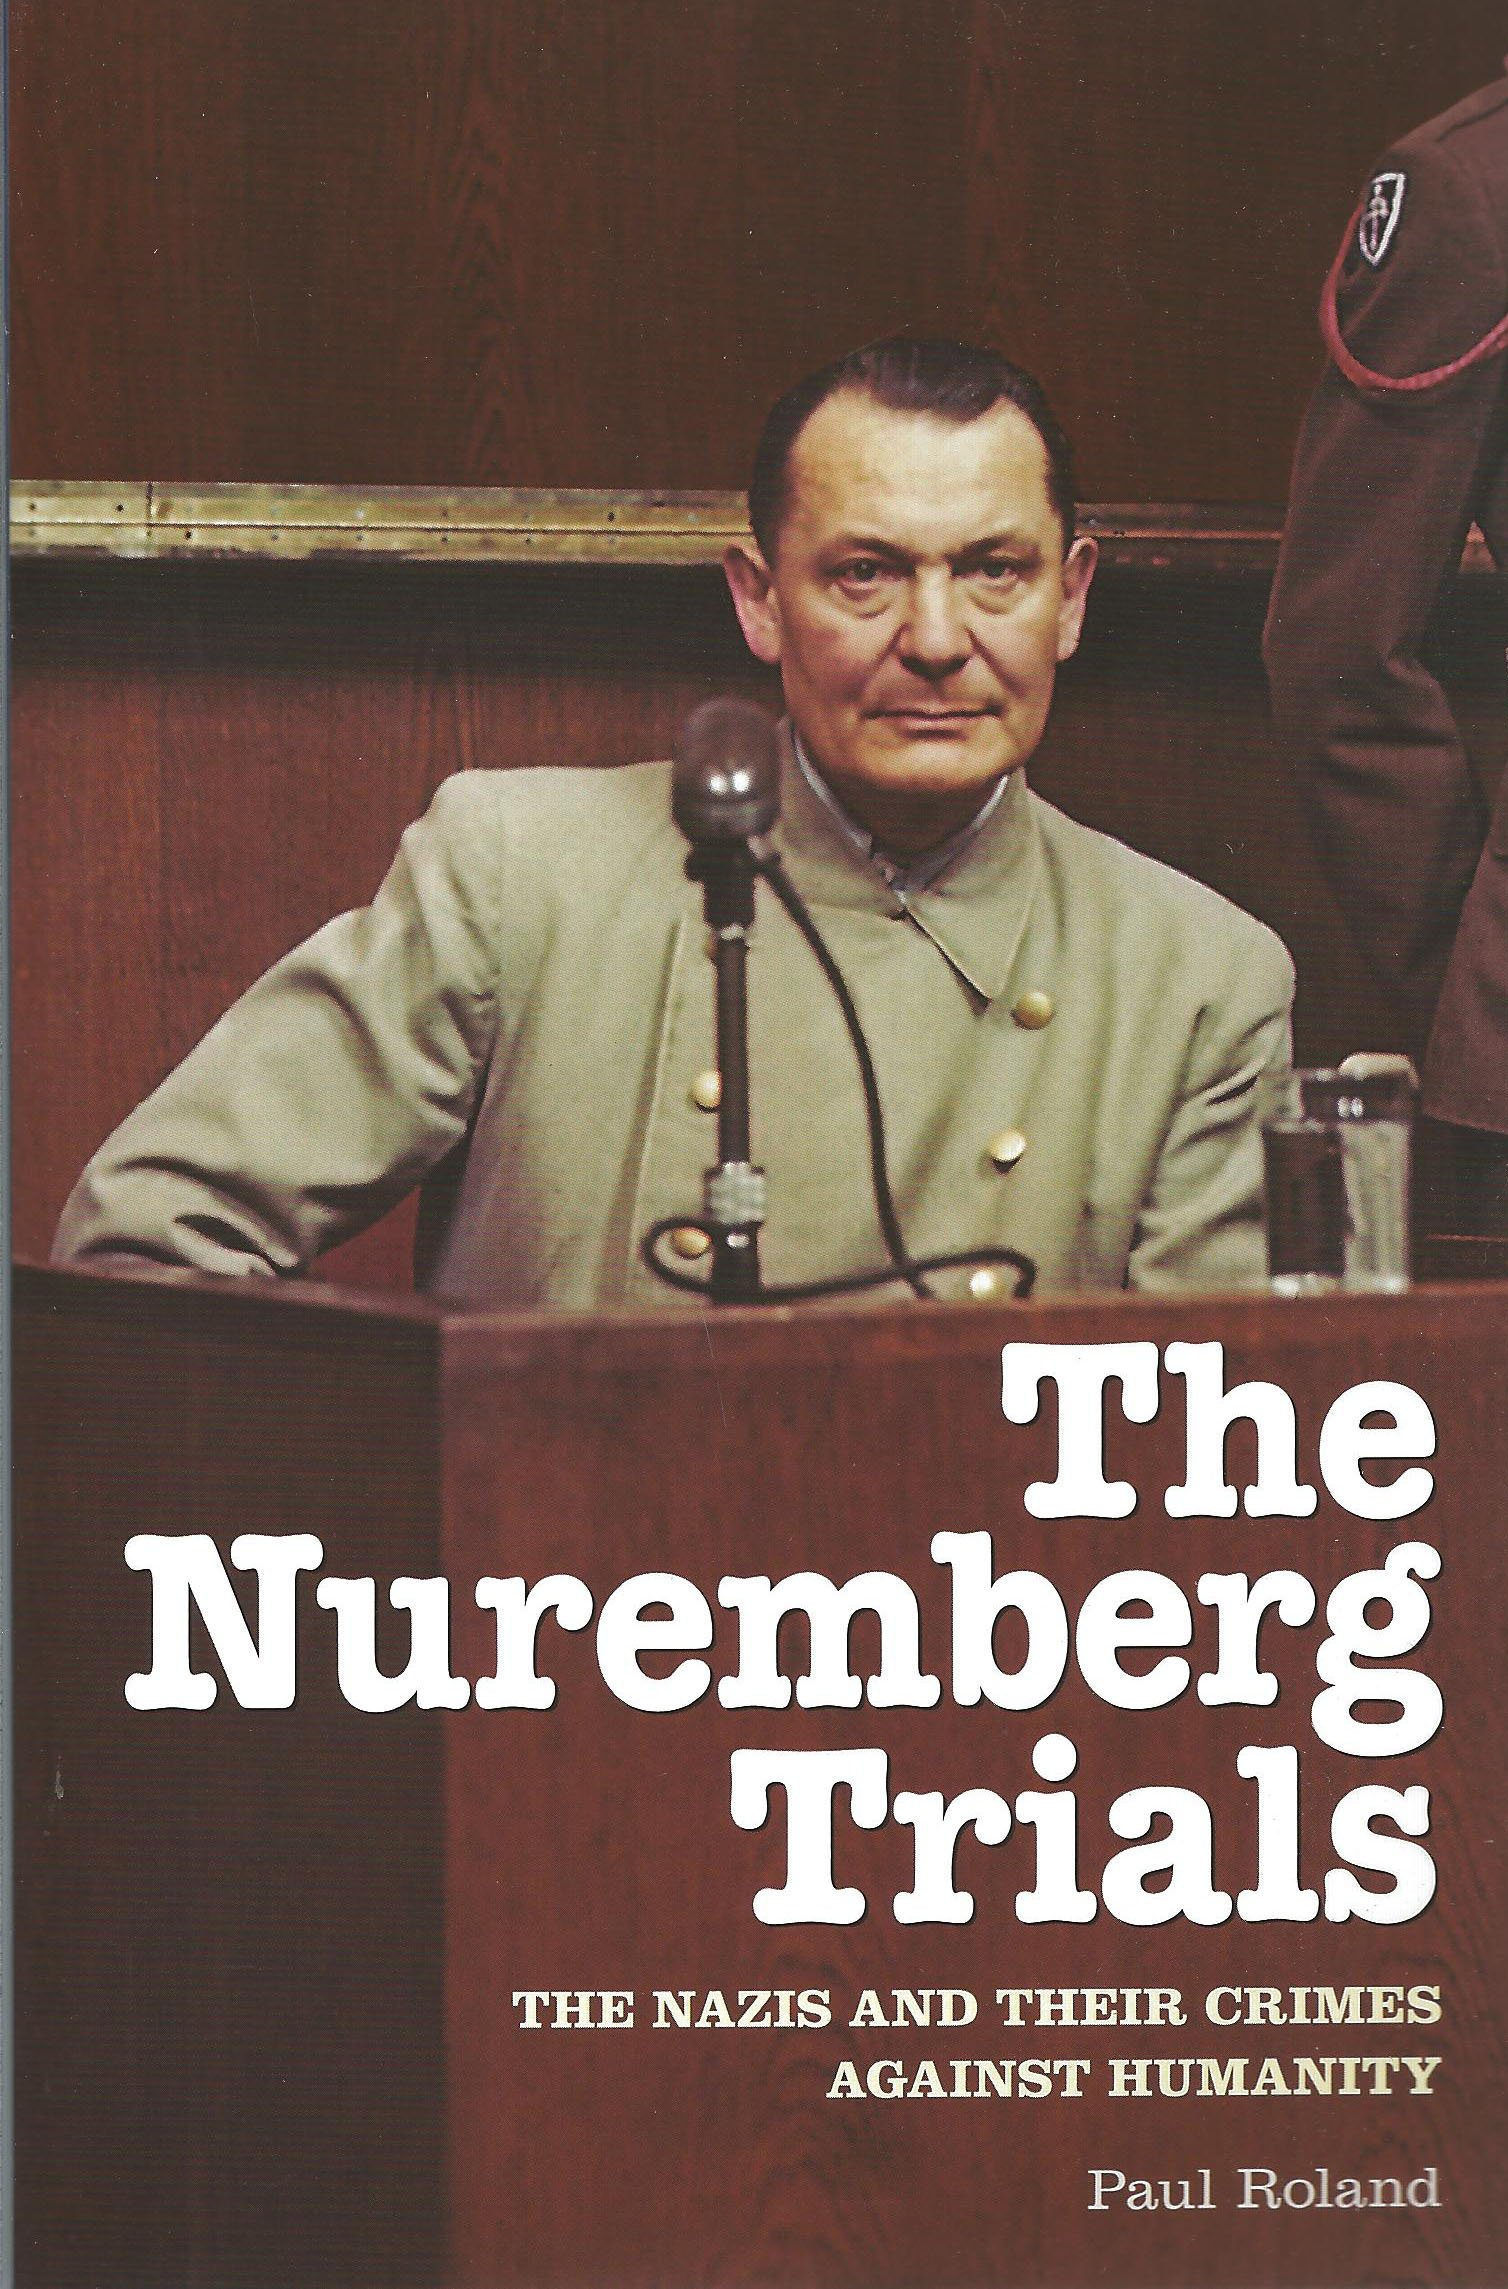 the nuremberg trials the nazis and their crimes against humanity the nuremberg trials the nazis and their crimes against humanity co uk paul roland 9781848588400 books